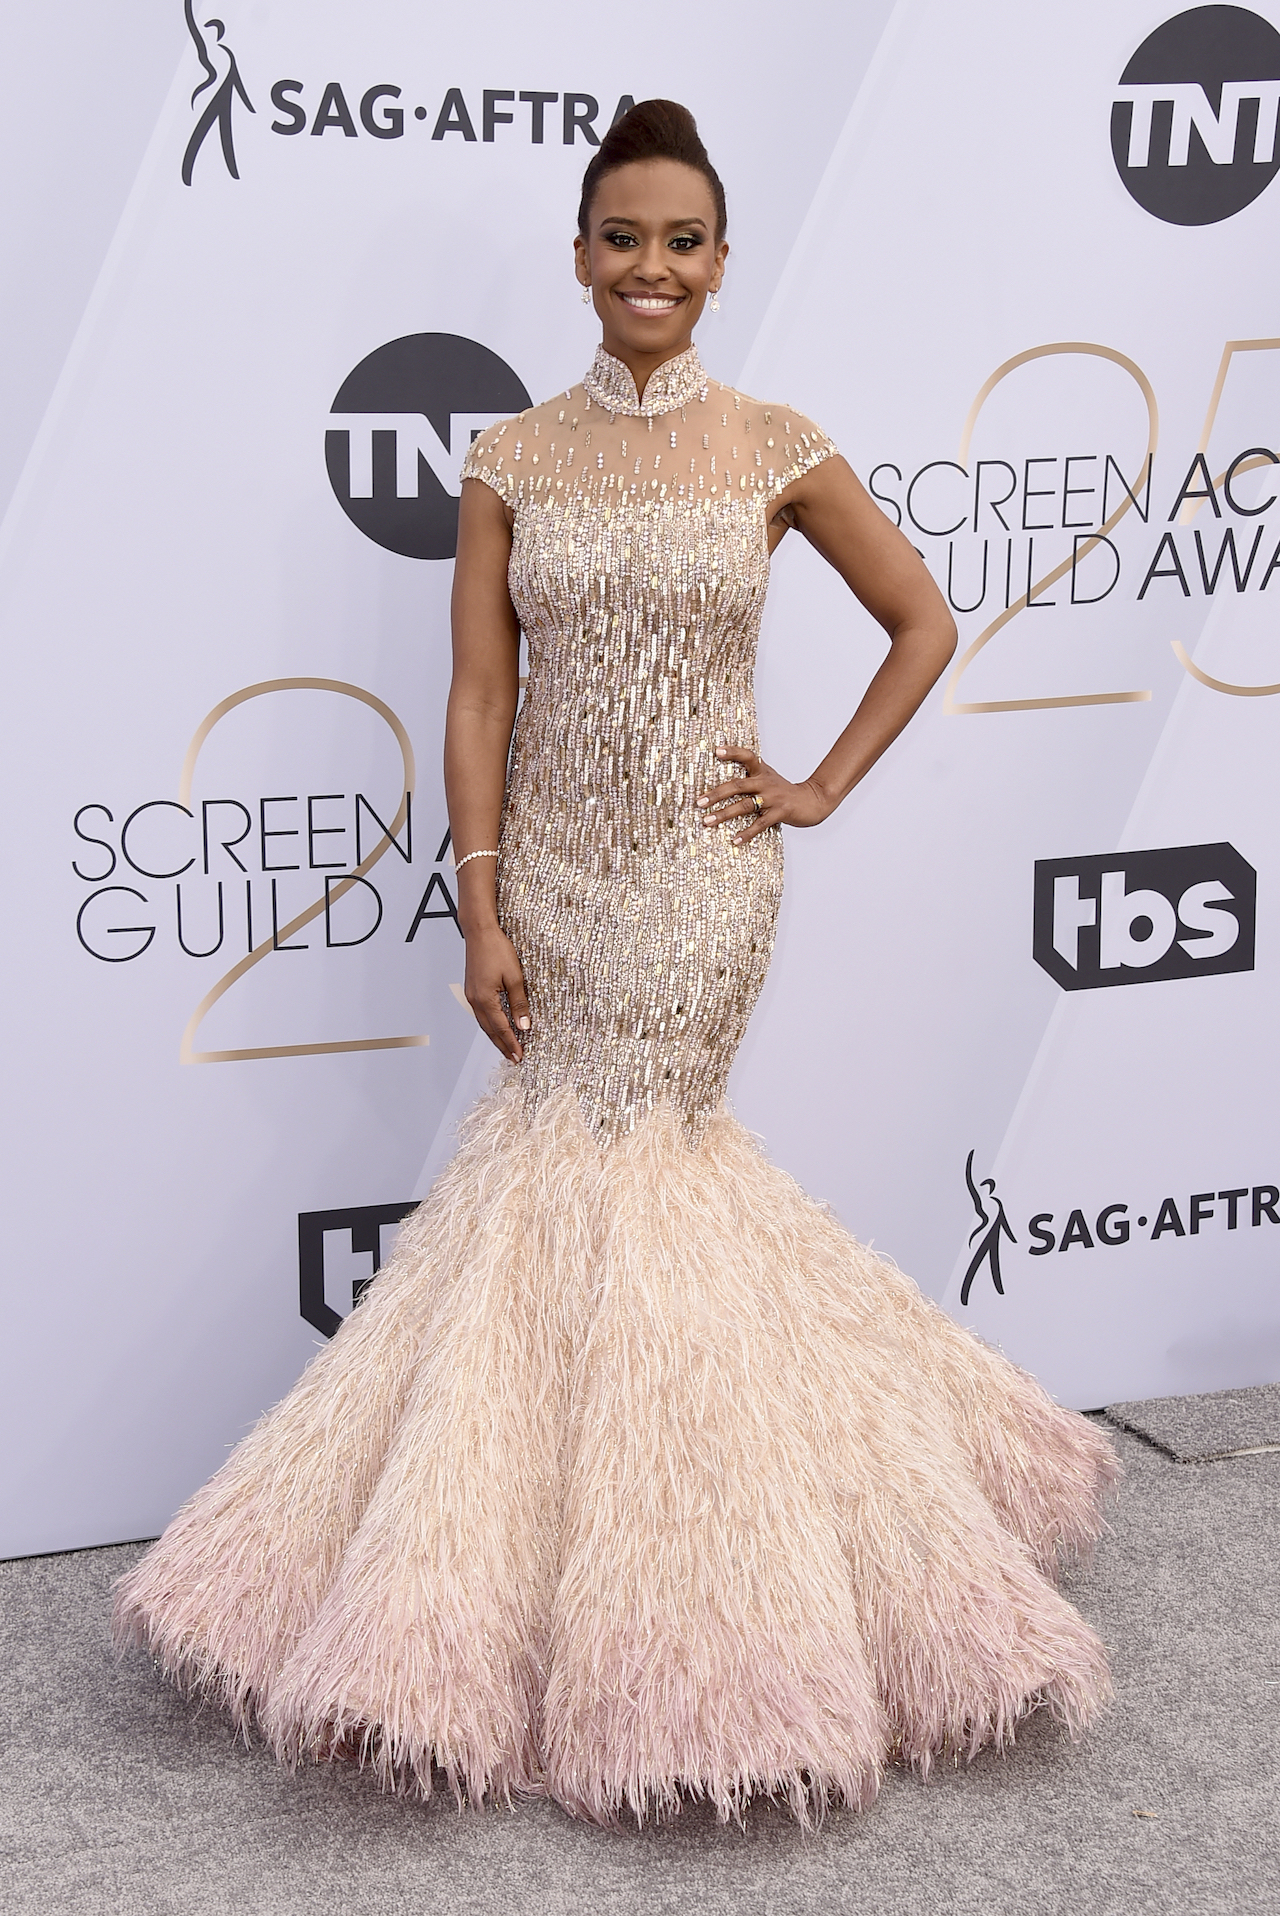 "<div class=""meta image-caption""><div class=""origin-logo origin-image ap""><span>AP</span></div><span class=""caption-text"">Ryan Michelle Bathe arrives at the 25th annual Screen Actors Guild Awards at the Shrine Auditorium & Expo Hall on Sunday, Jan. 27, 2019, in Los Angeles. (Jordan Strauss/Invision/AP)</span></div>"